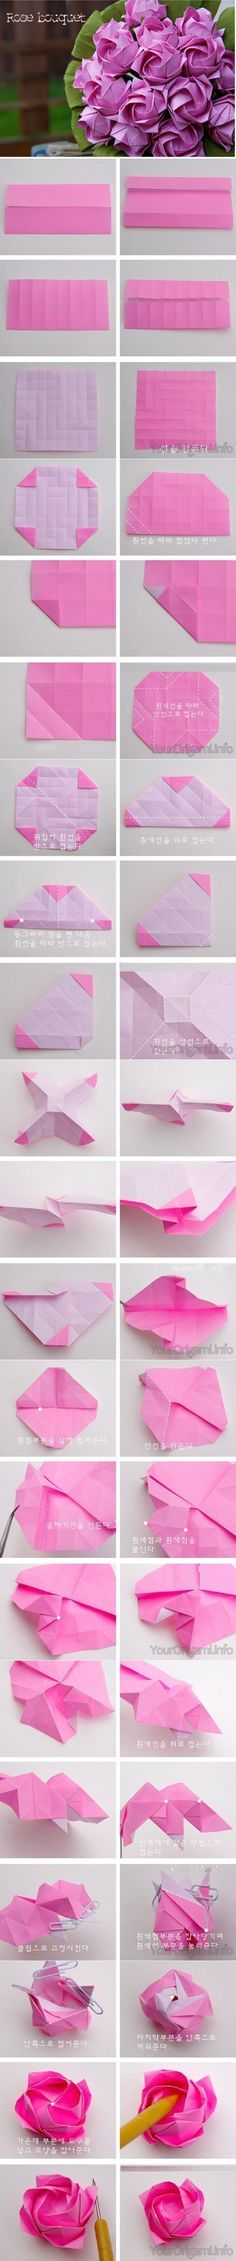 27 Awesome Picture of Origami Ideas Decoration . Origami Ideas ... | 2261x236